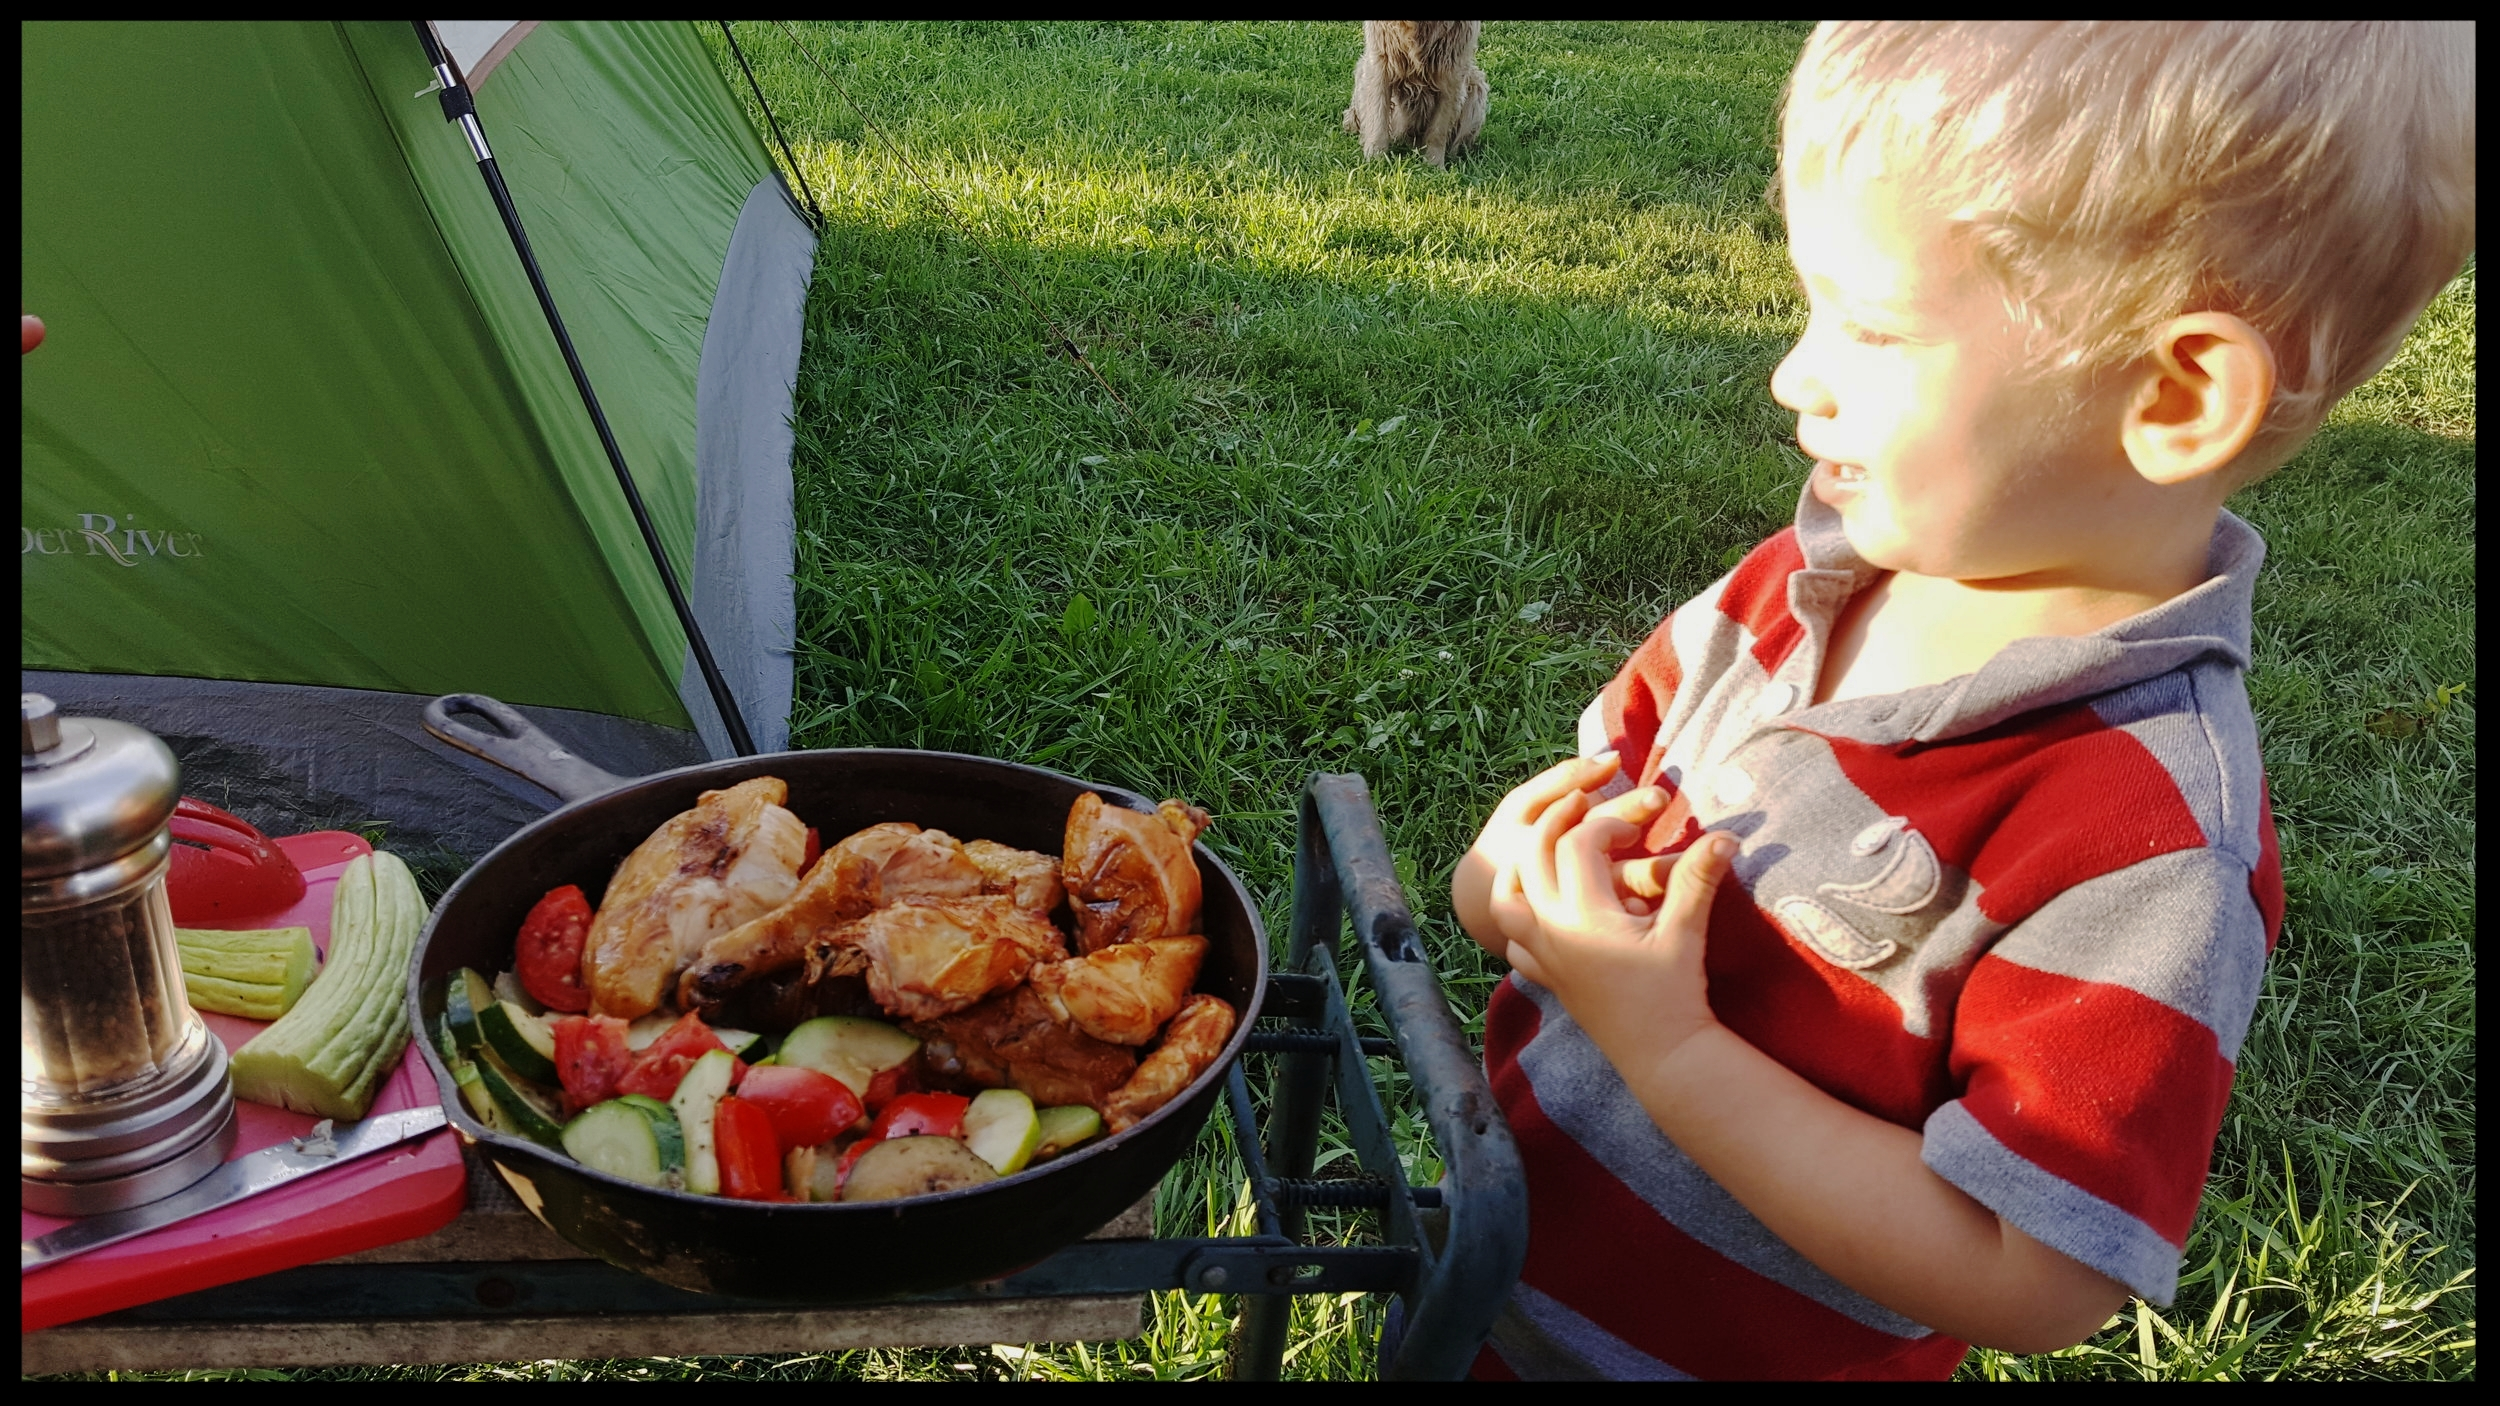 Elias getting ready to tear into some delicious grilled maple smoke chicken, and fresh tomatoes and zucchini from a neighbor that Allison sautéed.